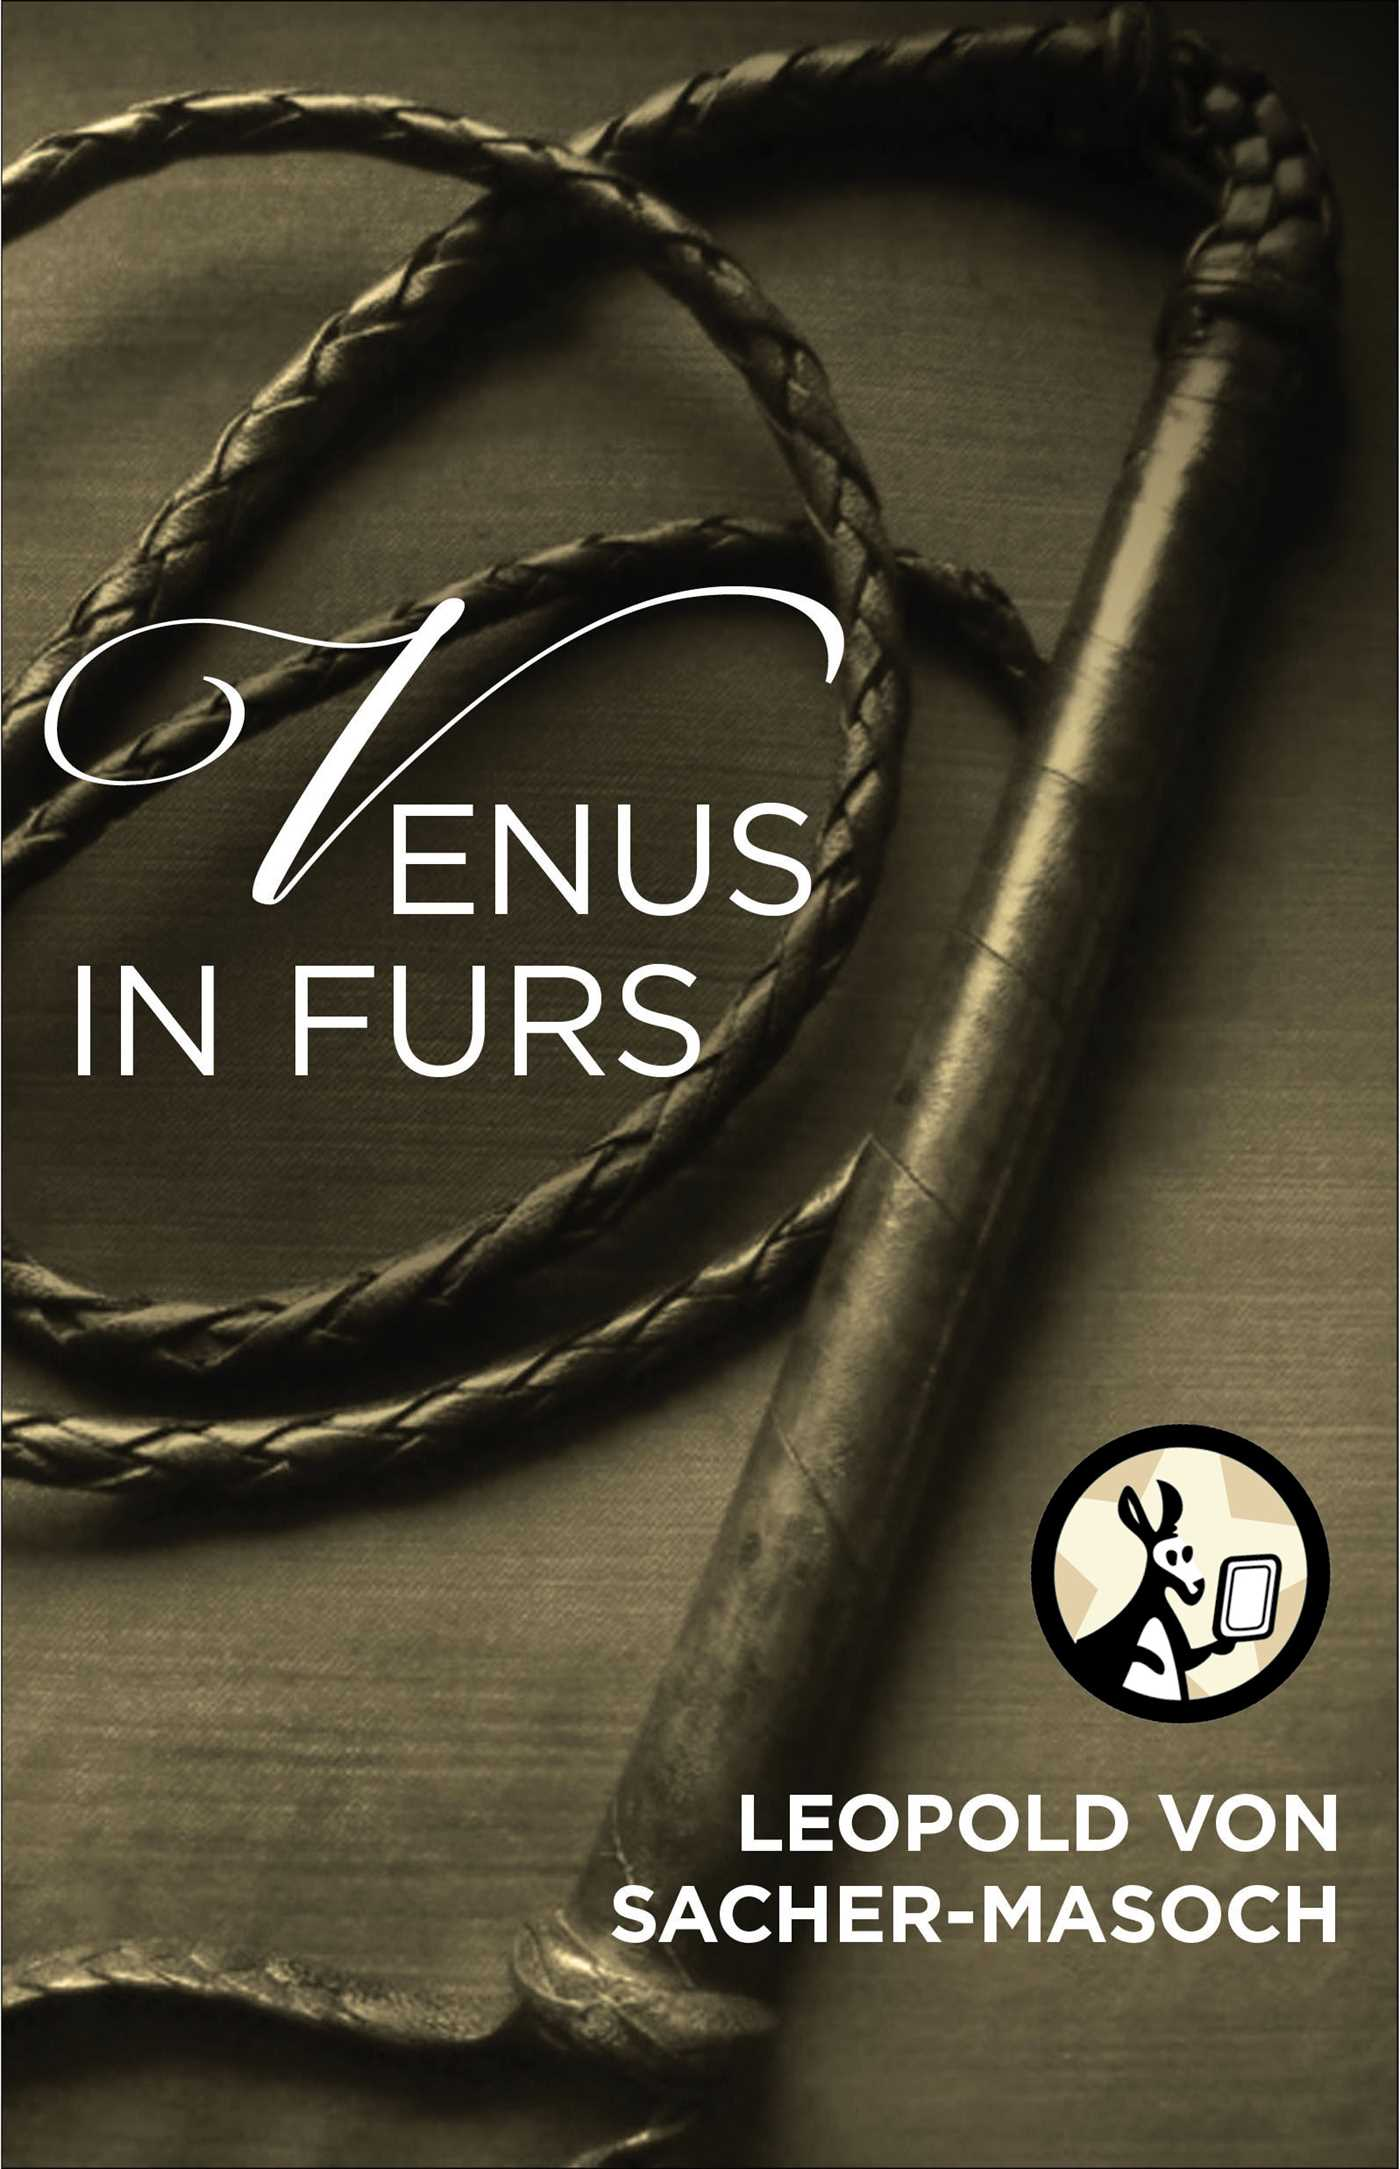 Venus in furs ebook by leopold von sacher masoch fernanda savage venus in furs ebook by leopold von sacher masoch fernanda savage kate dresser official publisher page simon schuster fandeluxe Choice Image